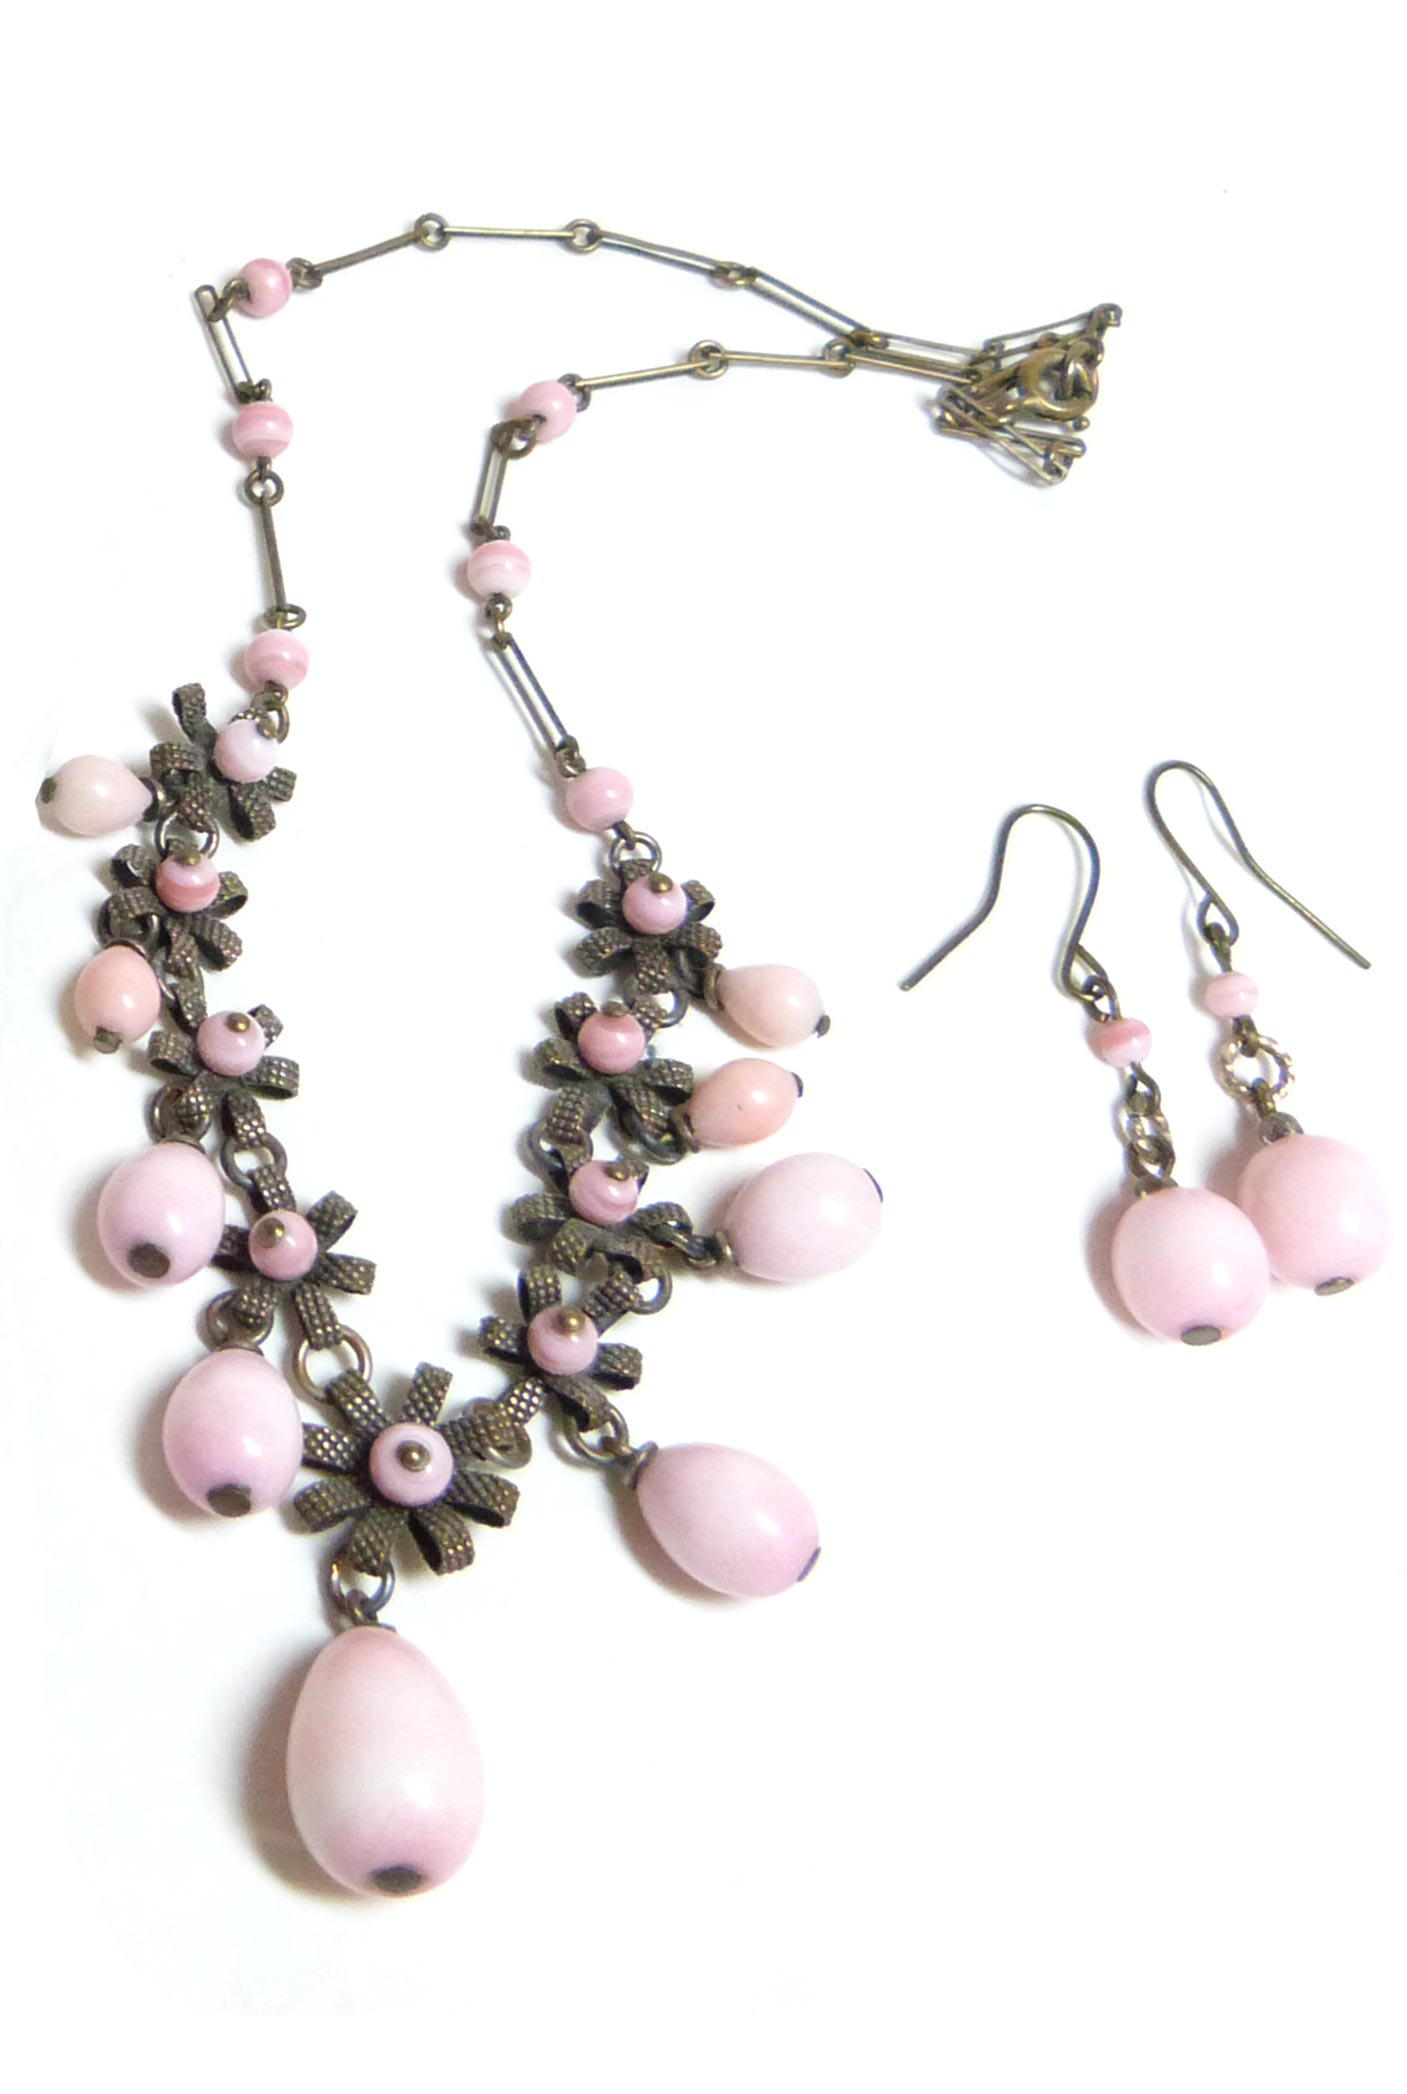 A pair of vintage earrings with a matching necklace